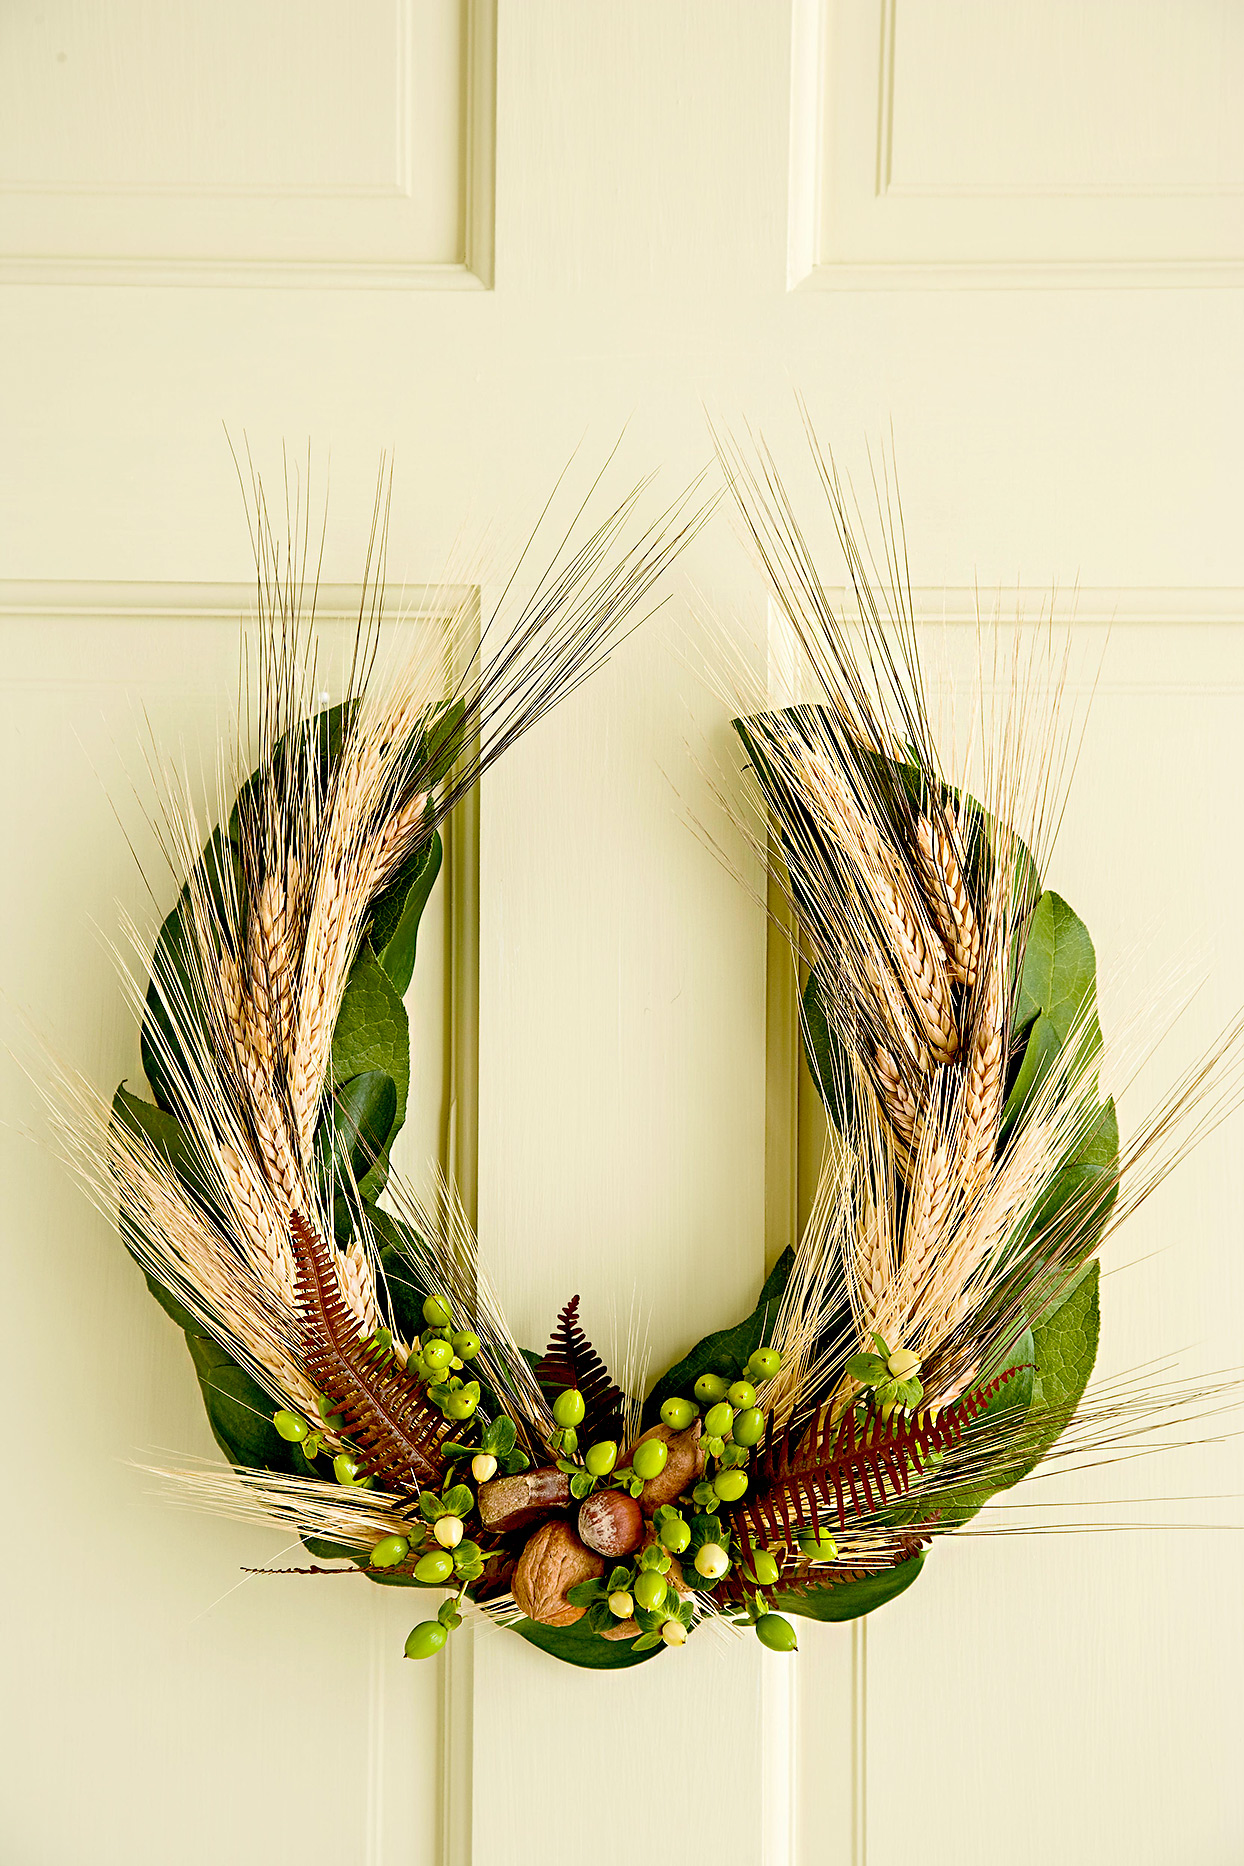 White door with green leaf wreath and wheat